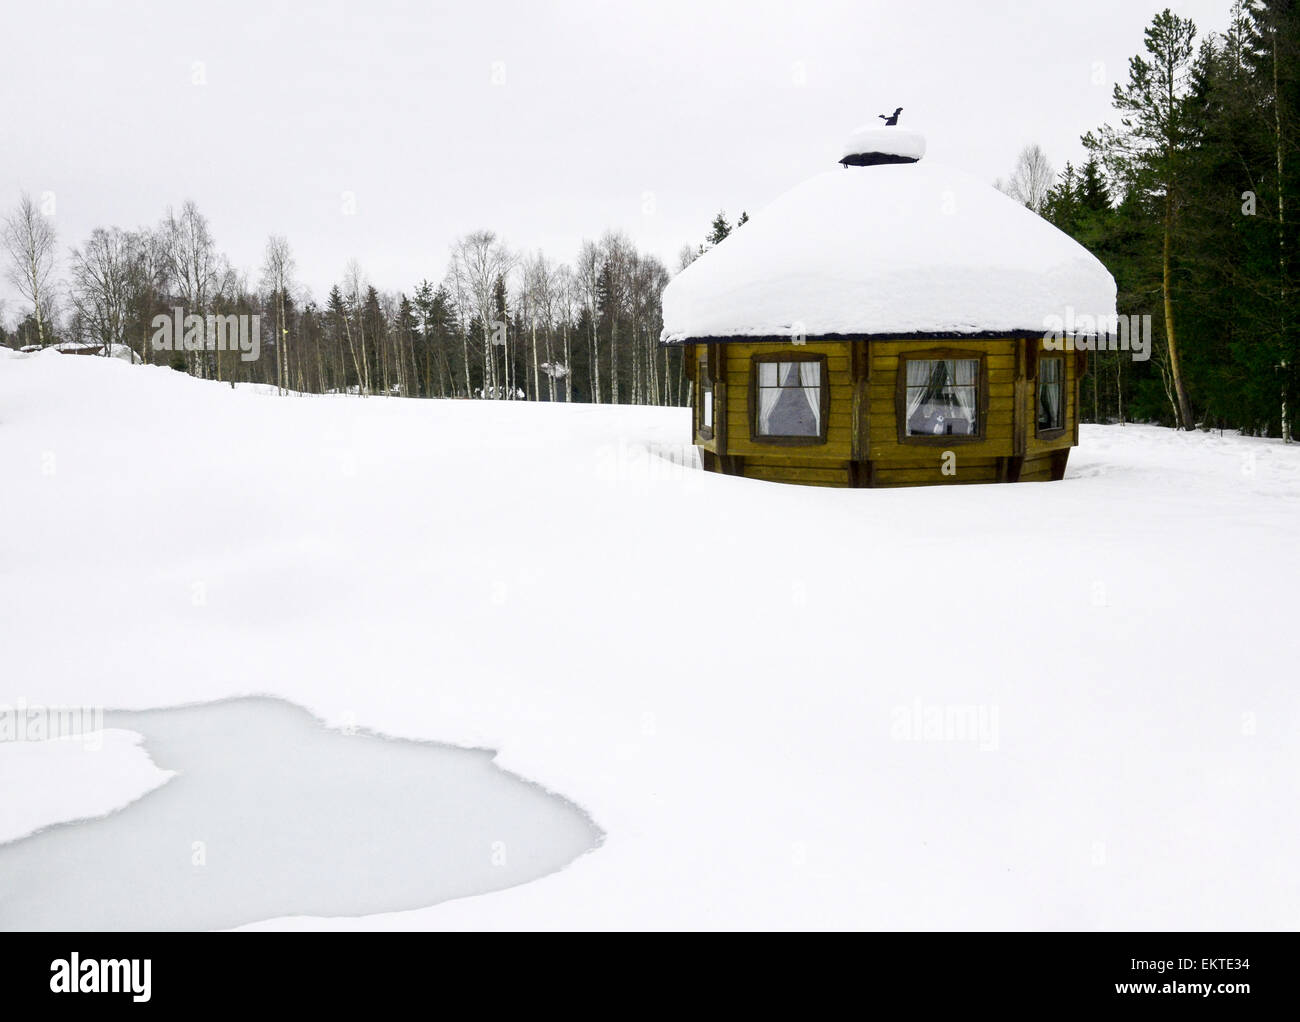 Lapland, Scandinavia, a snow covered wooden sauna shed, in a landscape of snow - Stock Image